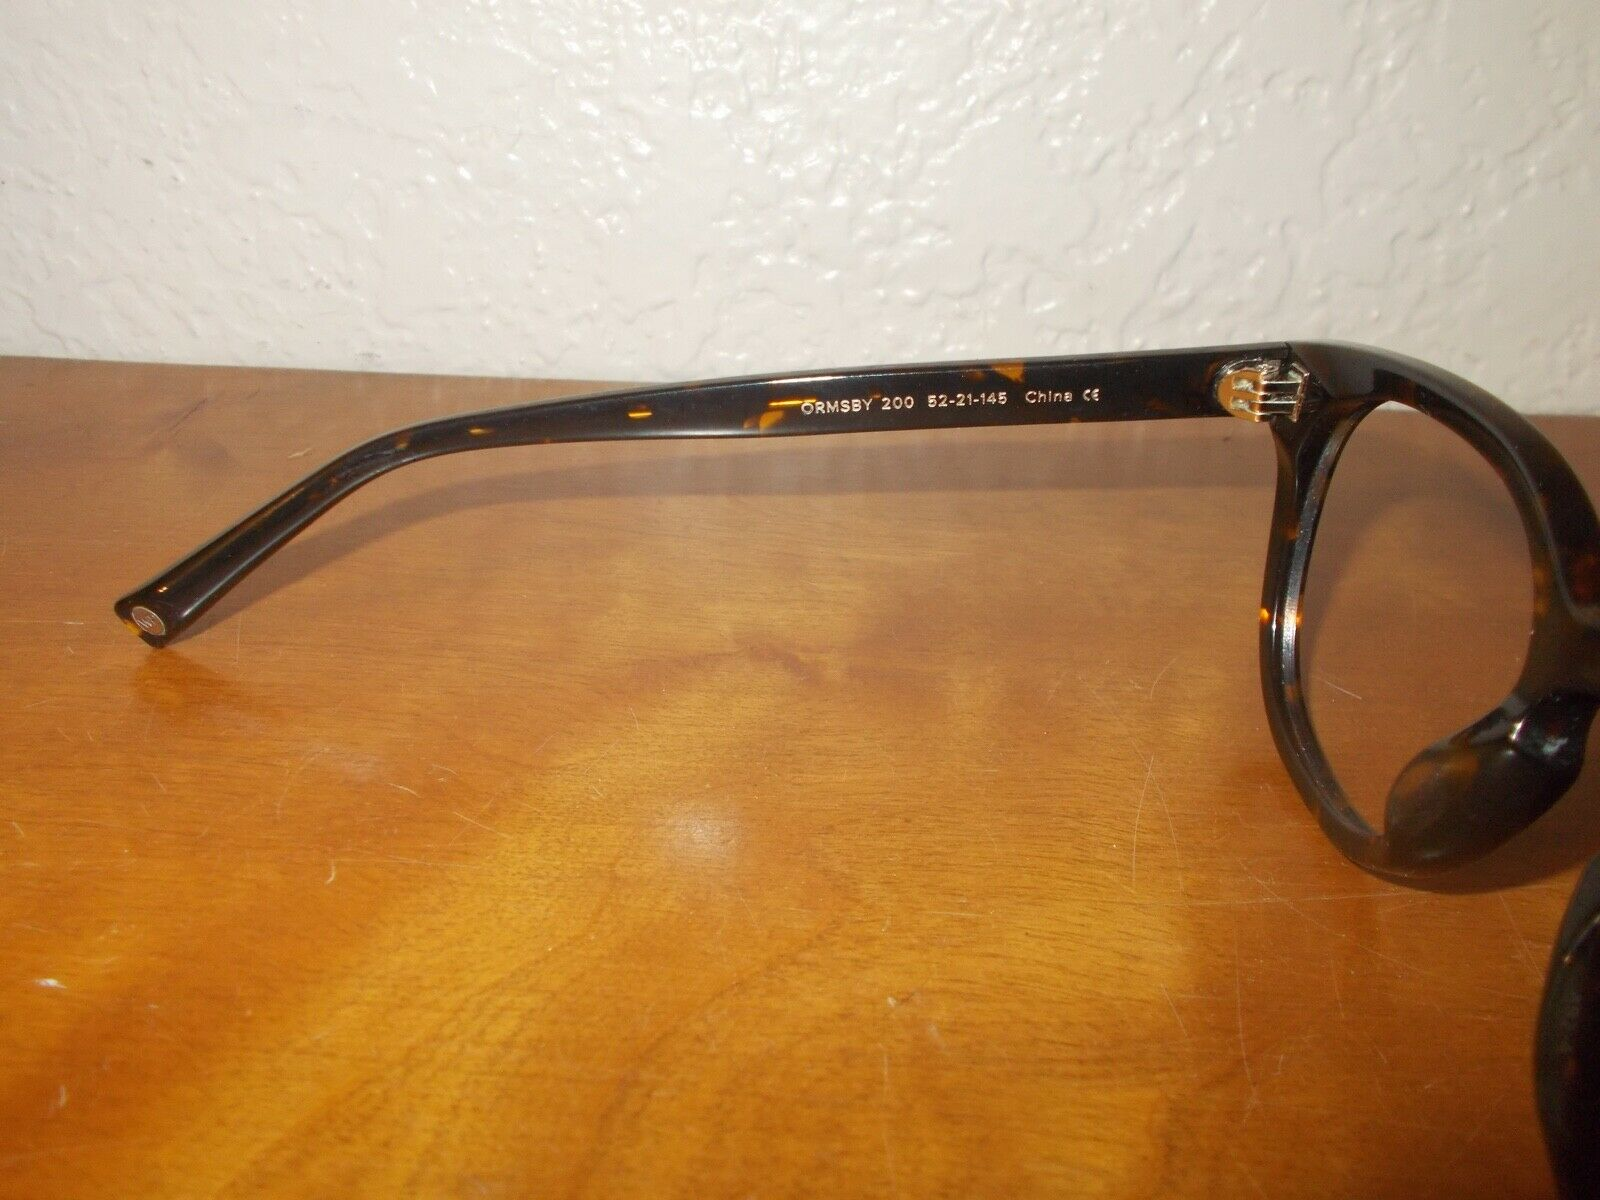 Warby Parker Ormsby 200 Tortoise Frame Sunglasses - image 6